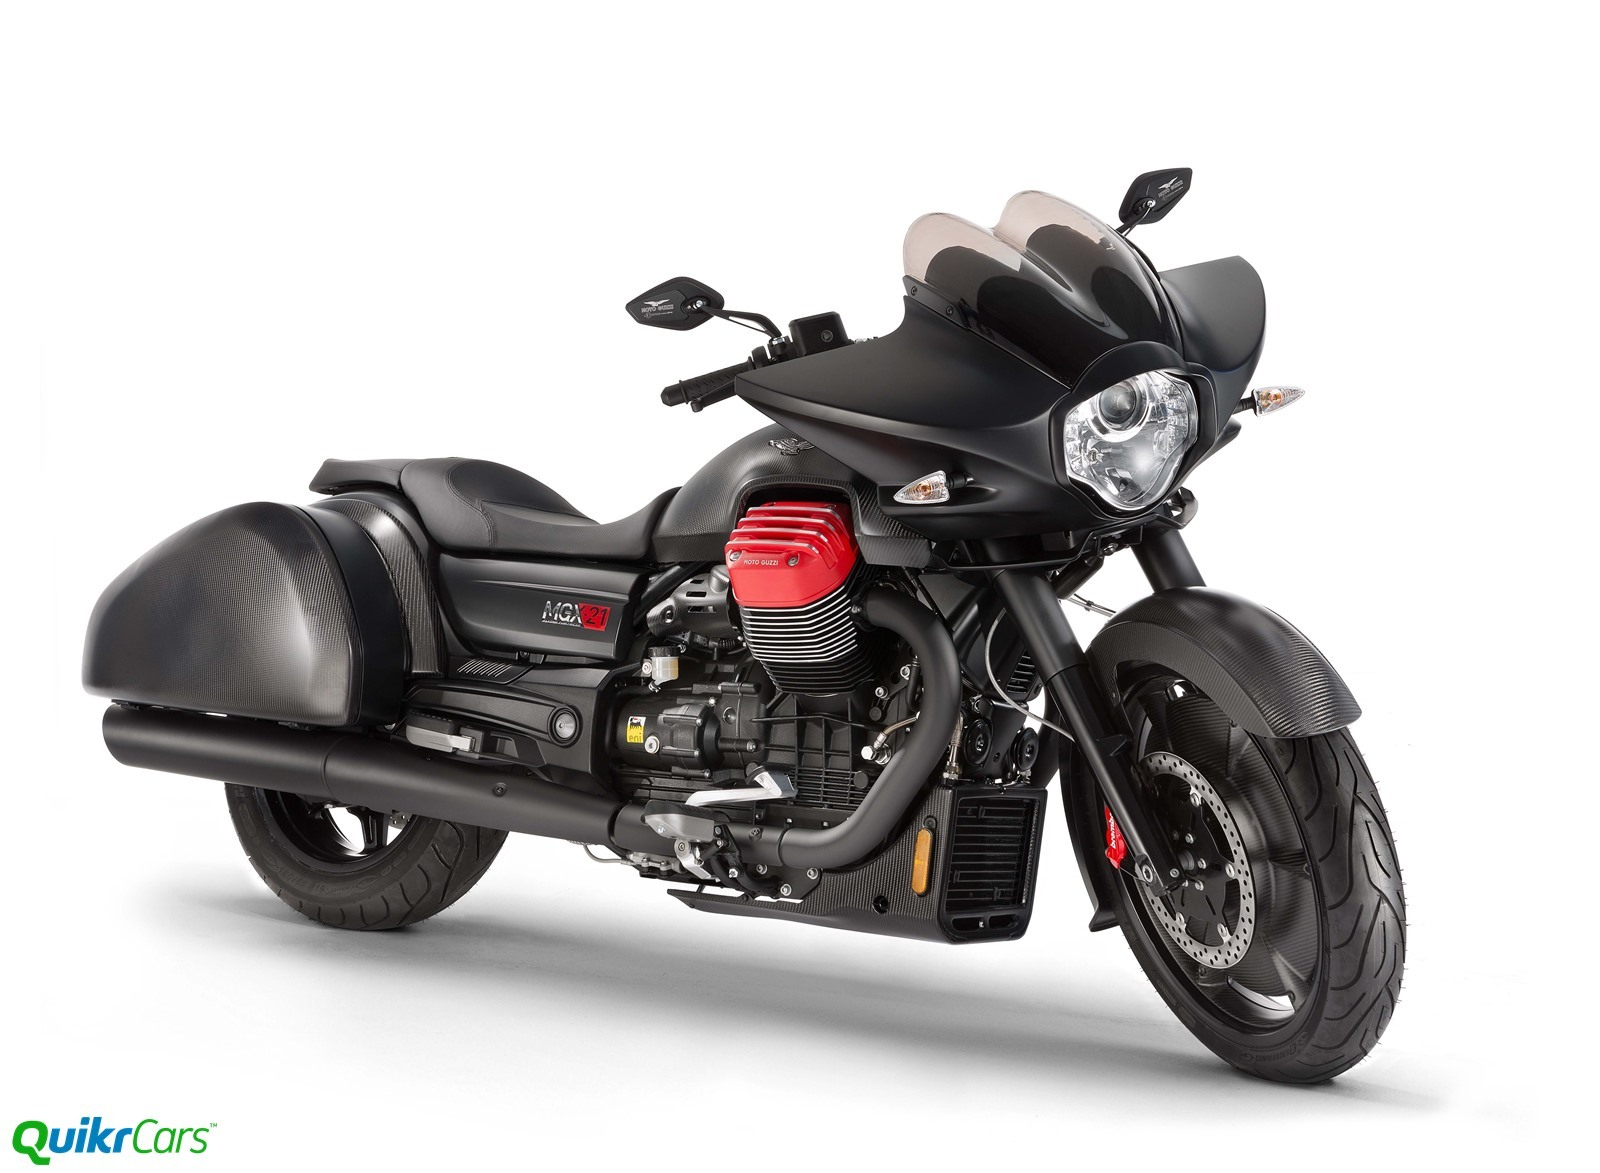 2016 Moto Guzzi MGX-21 Flying Fortress unveiled at EICMA